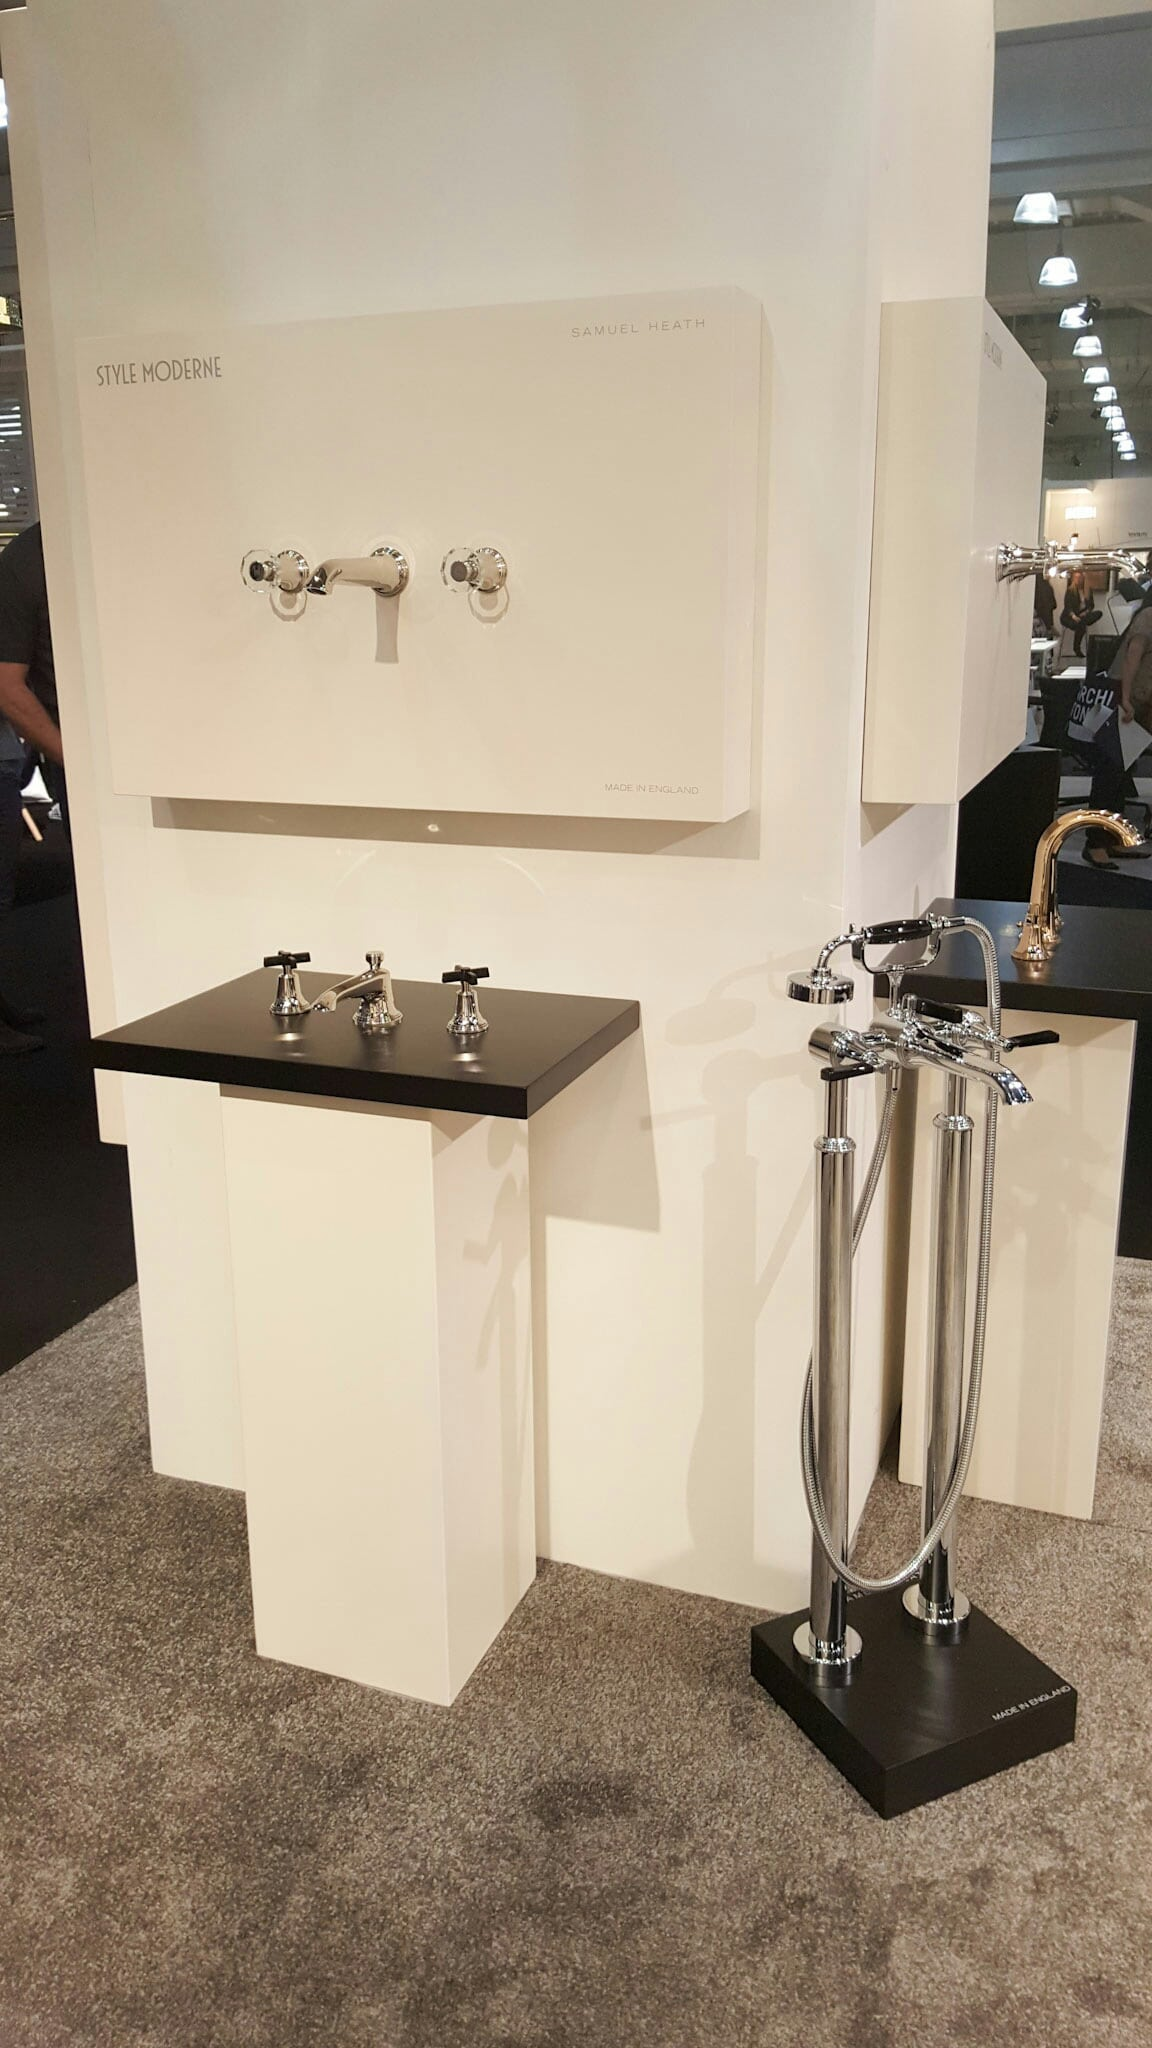 Contemporary, modern, transitional plumbing fixtures and appliances